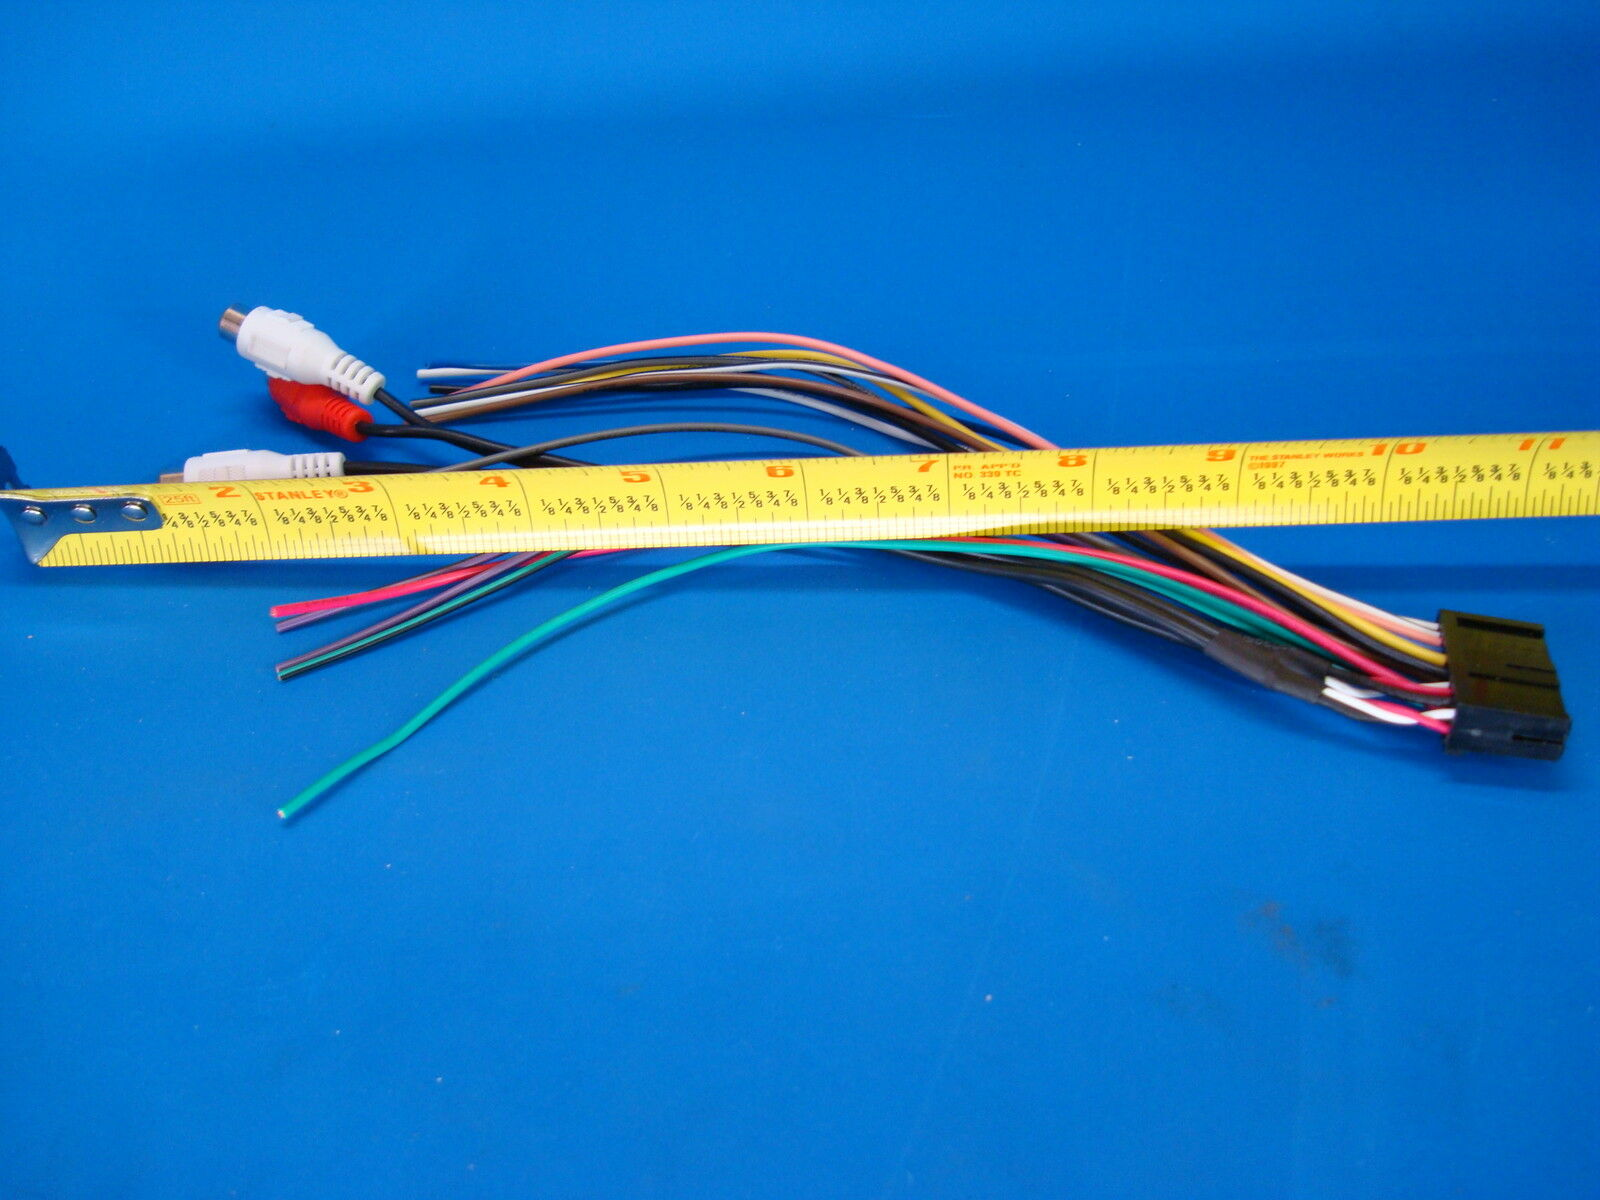 DUAL RADIO POWER PLUG STEREO WIRE HARNESS 20PIN CD MP3 DVD TV XDVD8180 US  SELLER For Sale